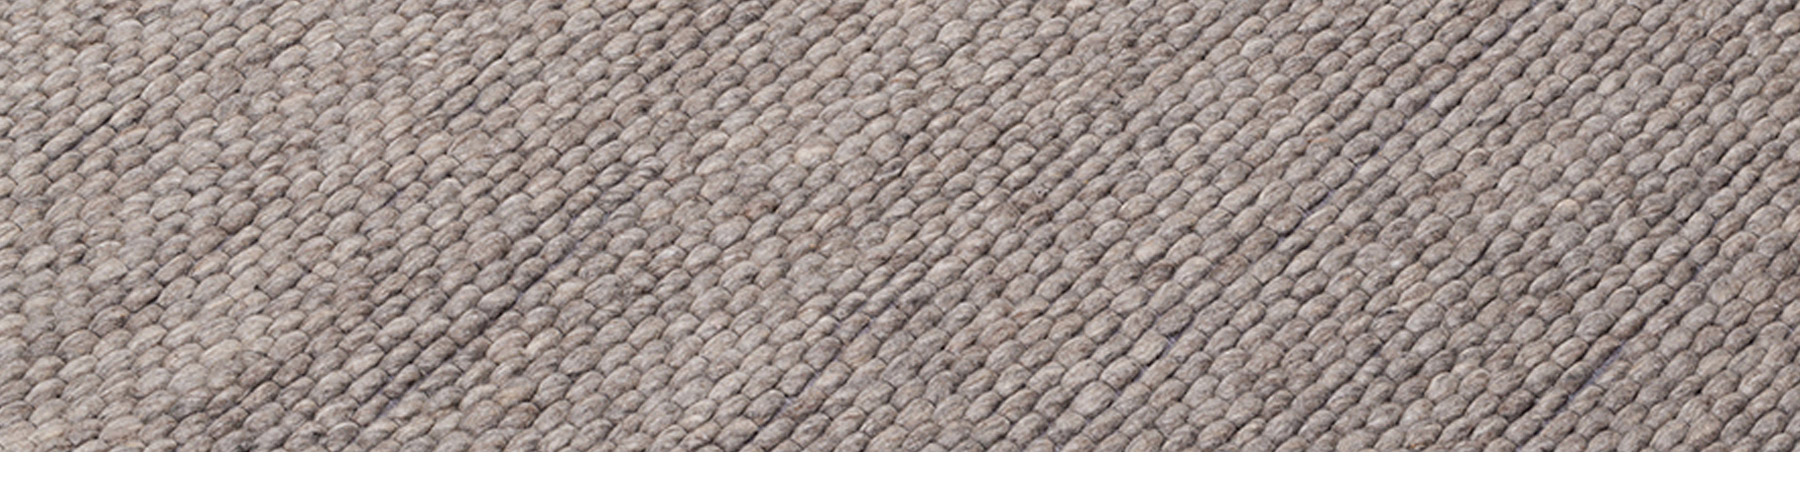 Chinook Gris détails - Carpette Tapis William